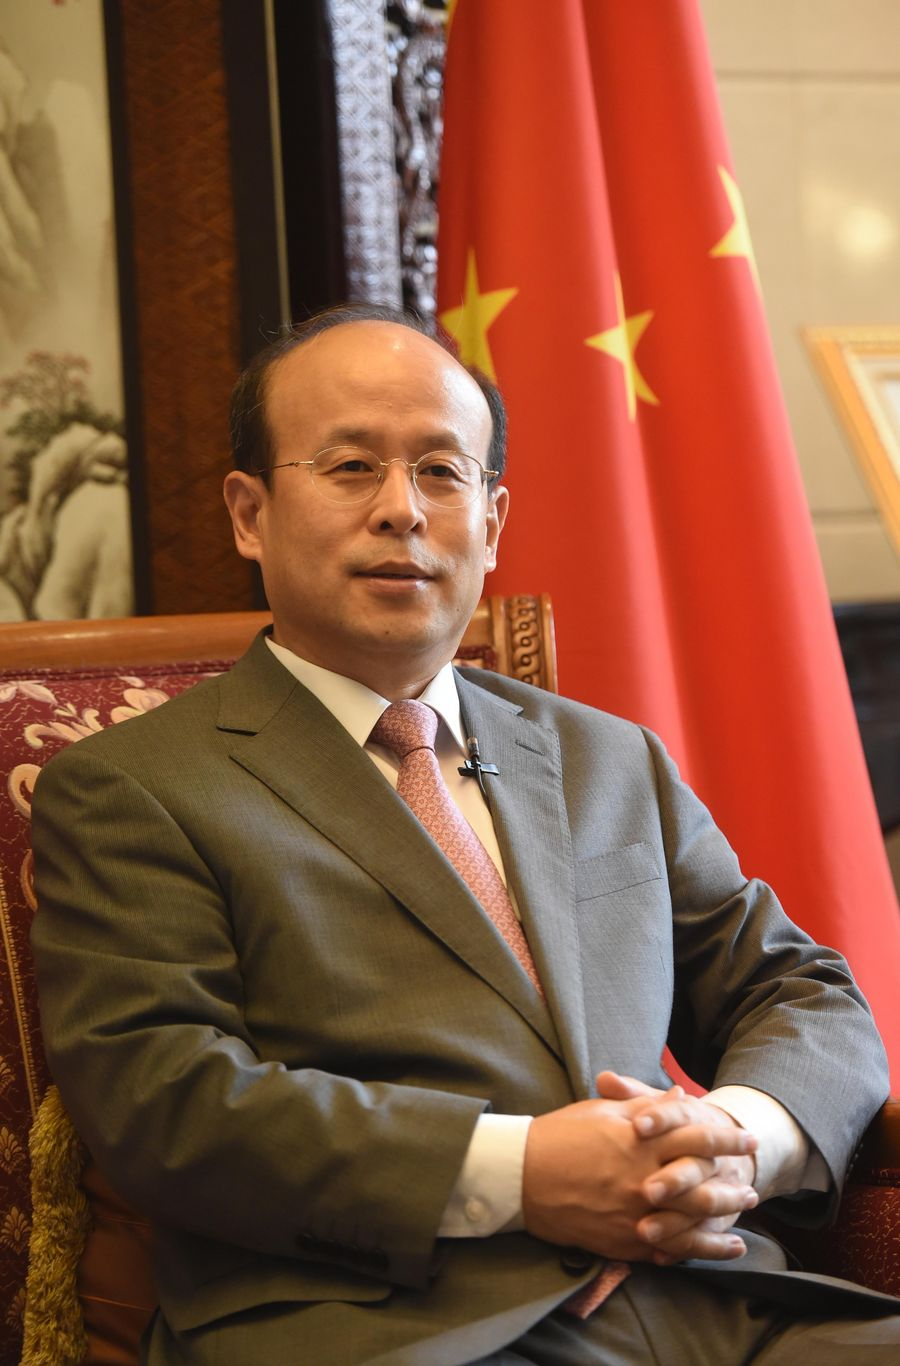 Interview: China-Indonesia strategic synergy continues deepening, says Chinese ambassador - Xinhua | English.news.cn